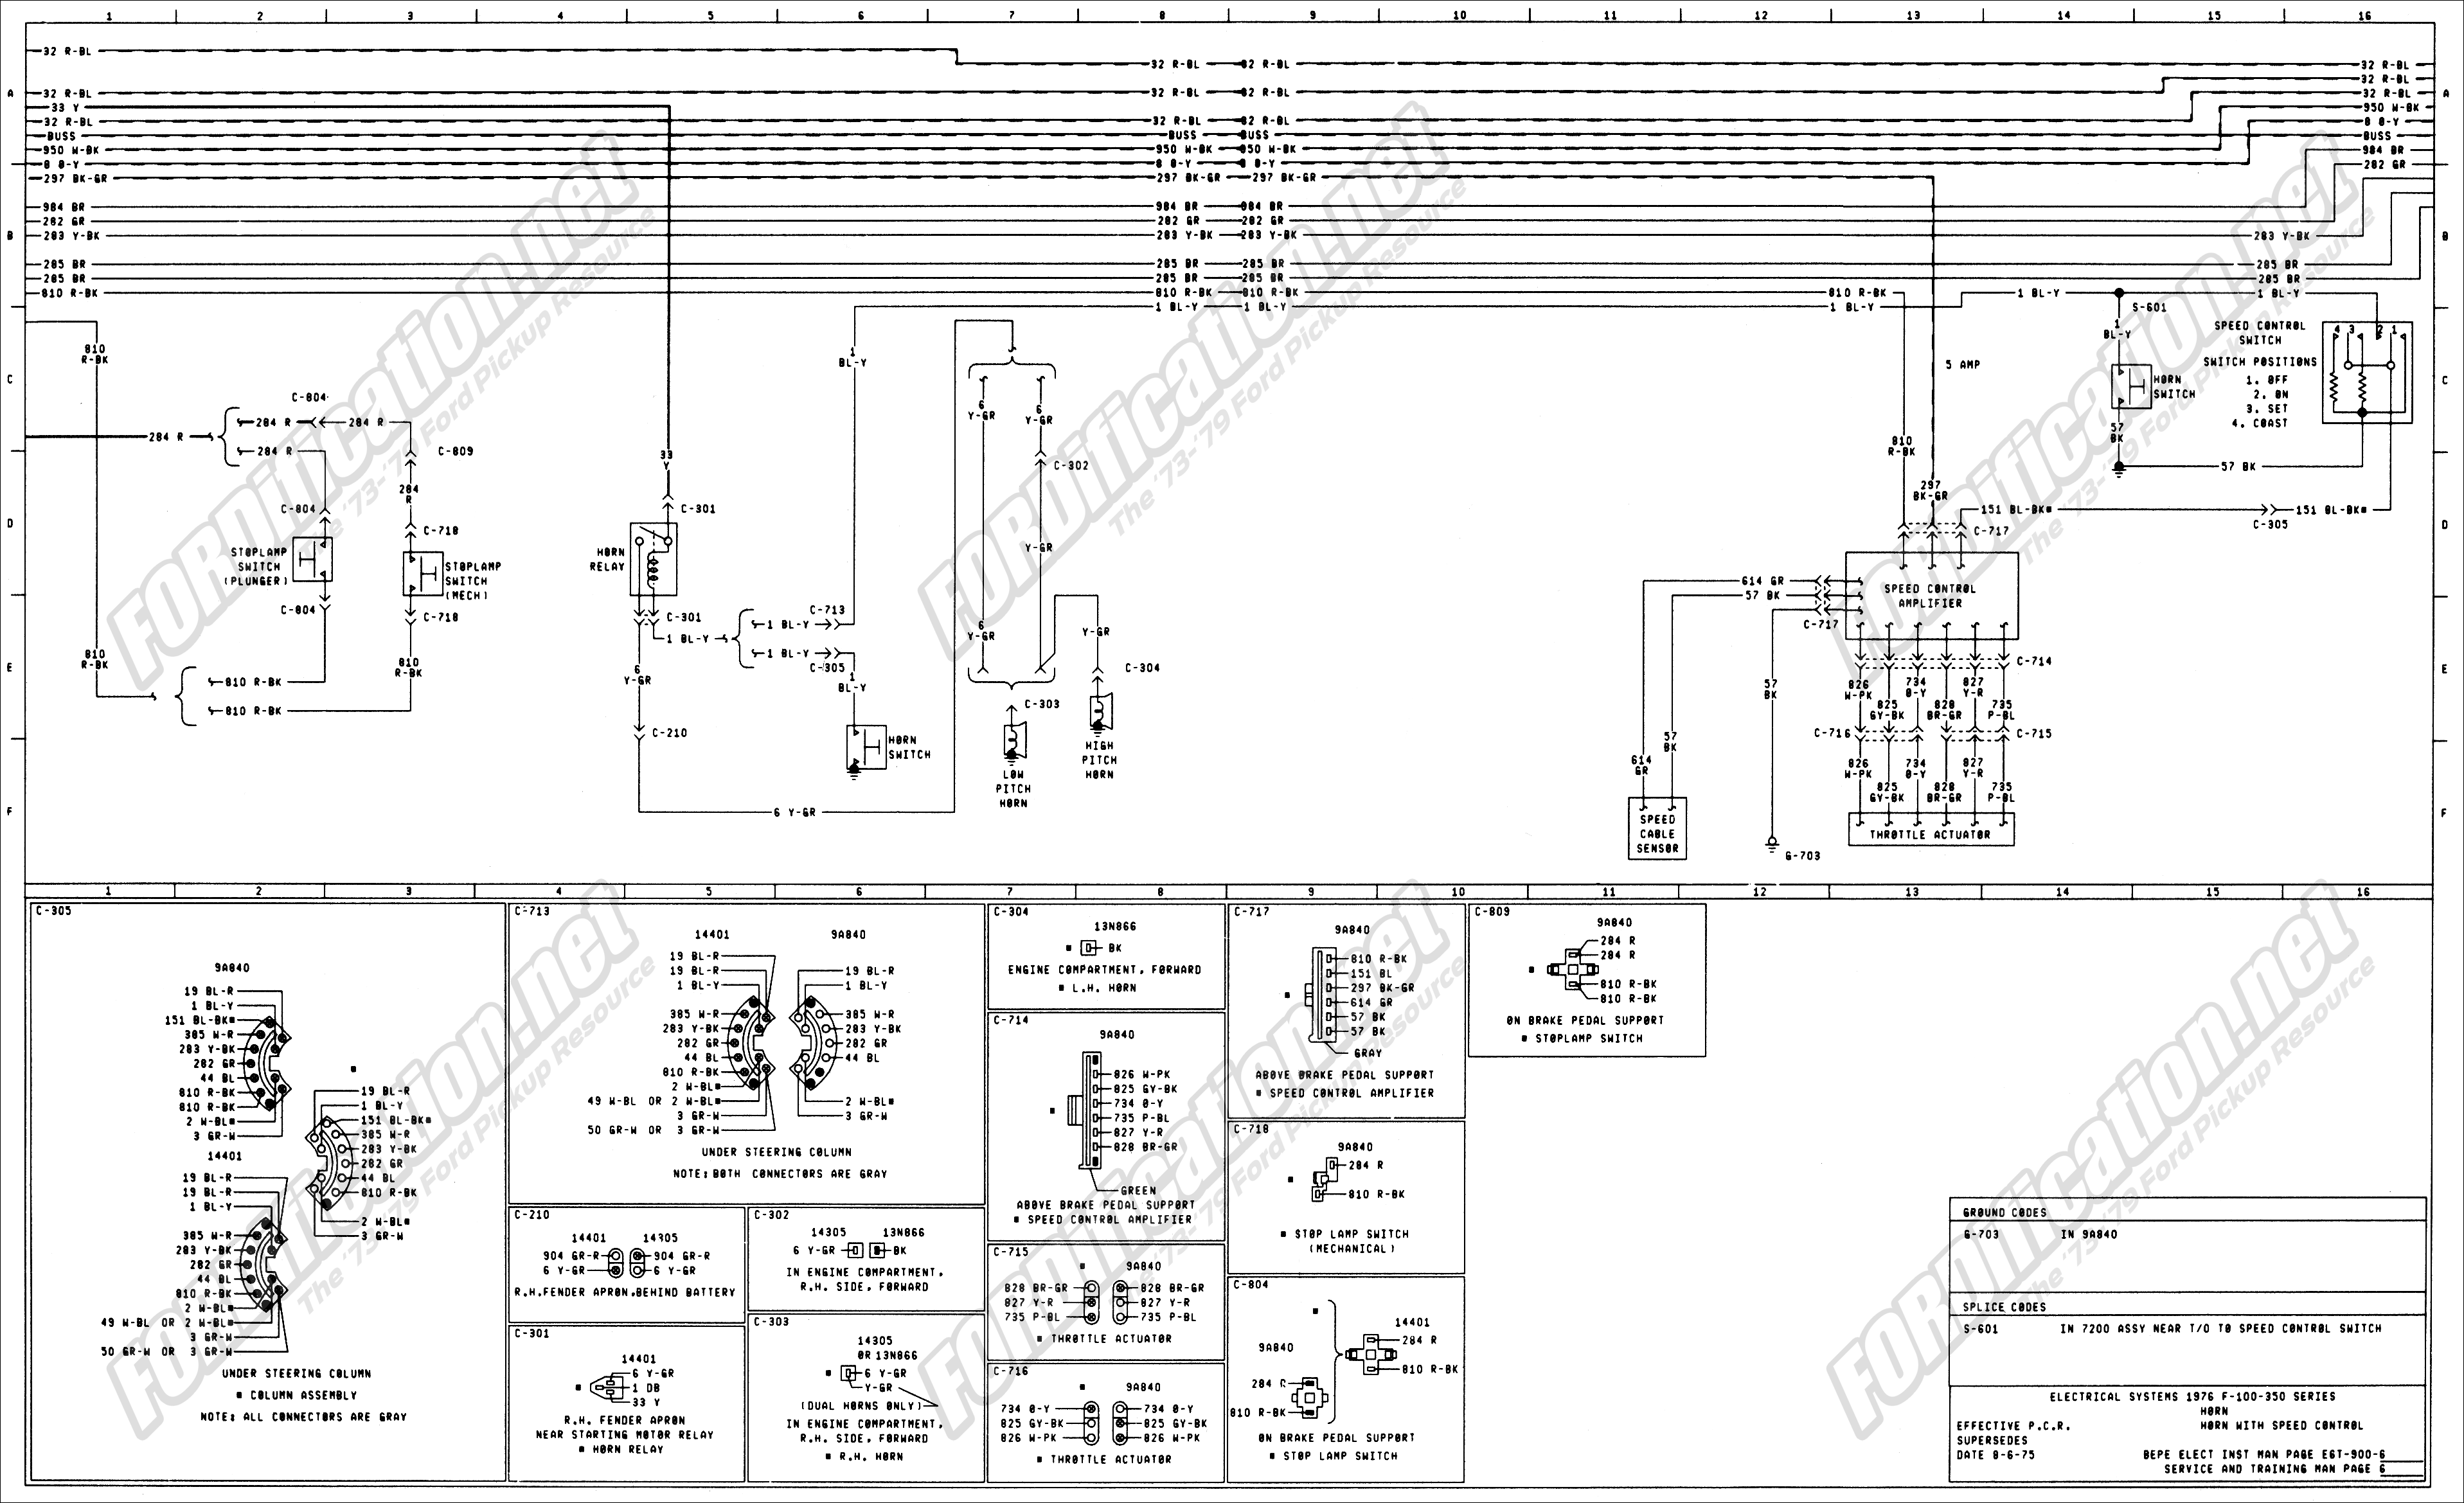 wiring_76master_6of9 1973 1979 ford truck wiring diagrams & schematics fordification net f750 wiring diagram at panicattacktreatment.co